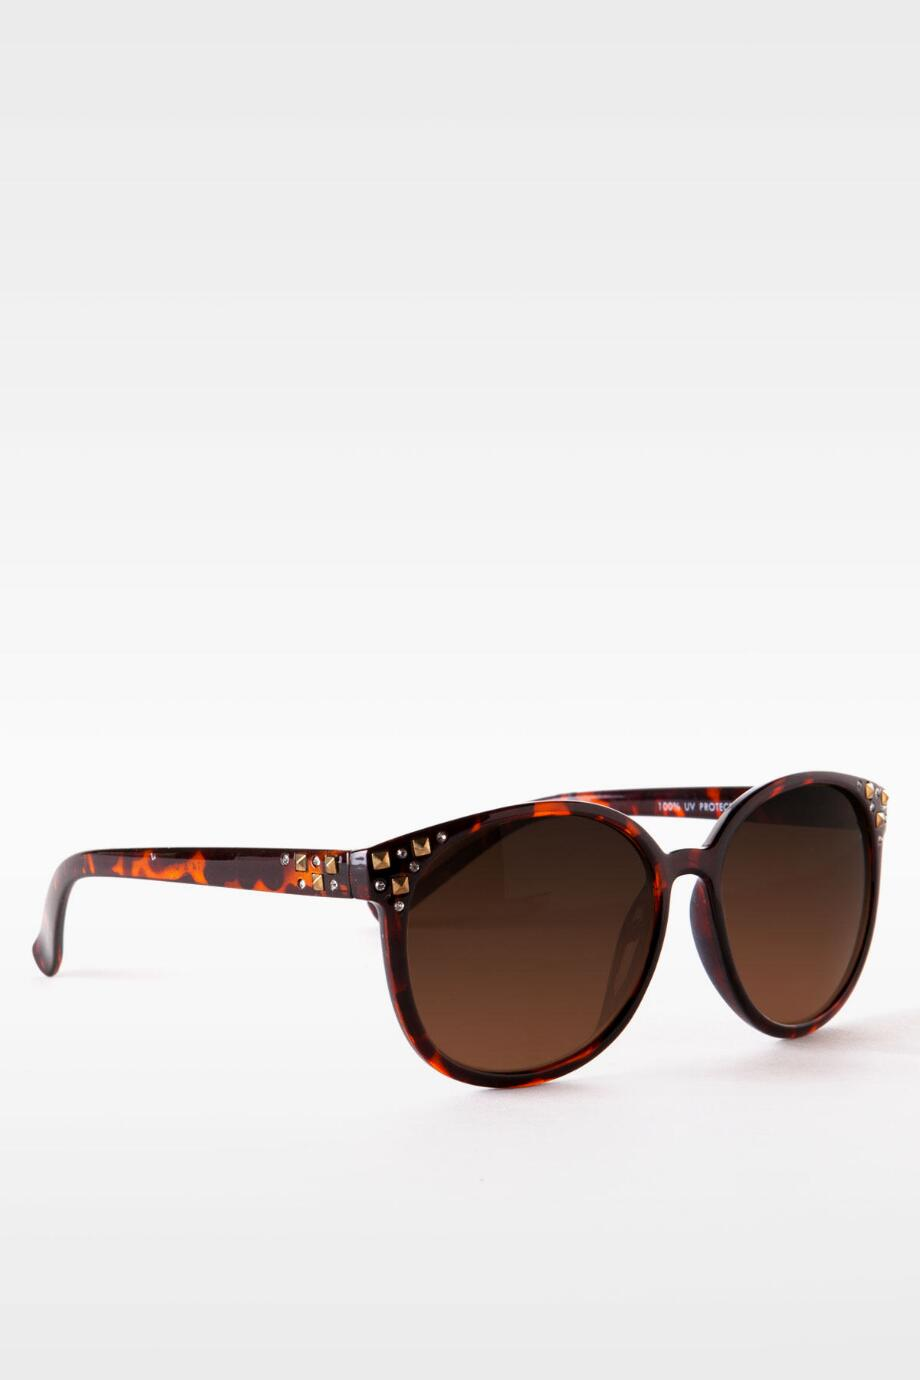 Whitehall Studded Sunglasses